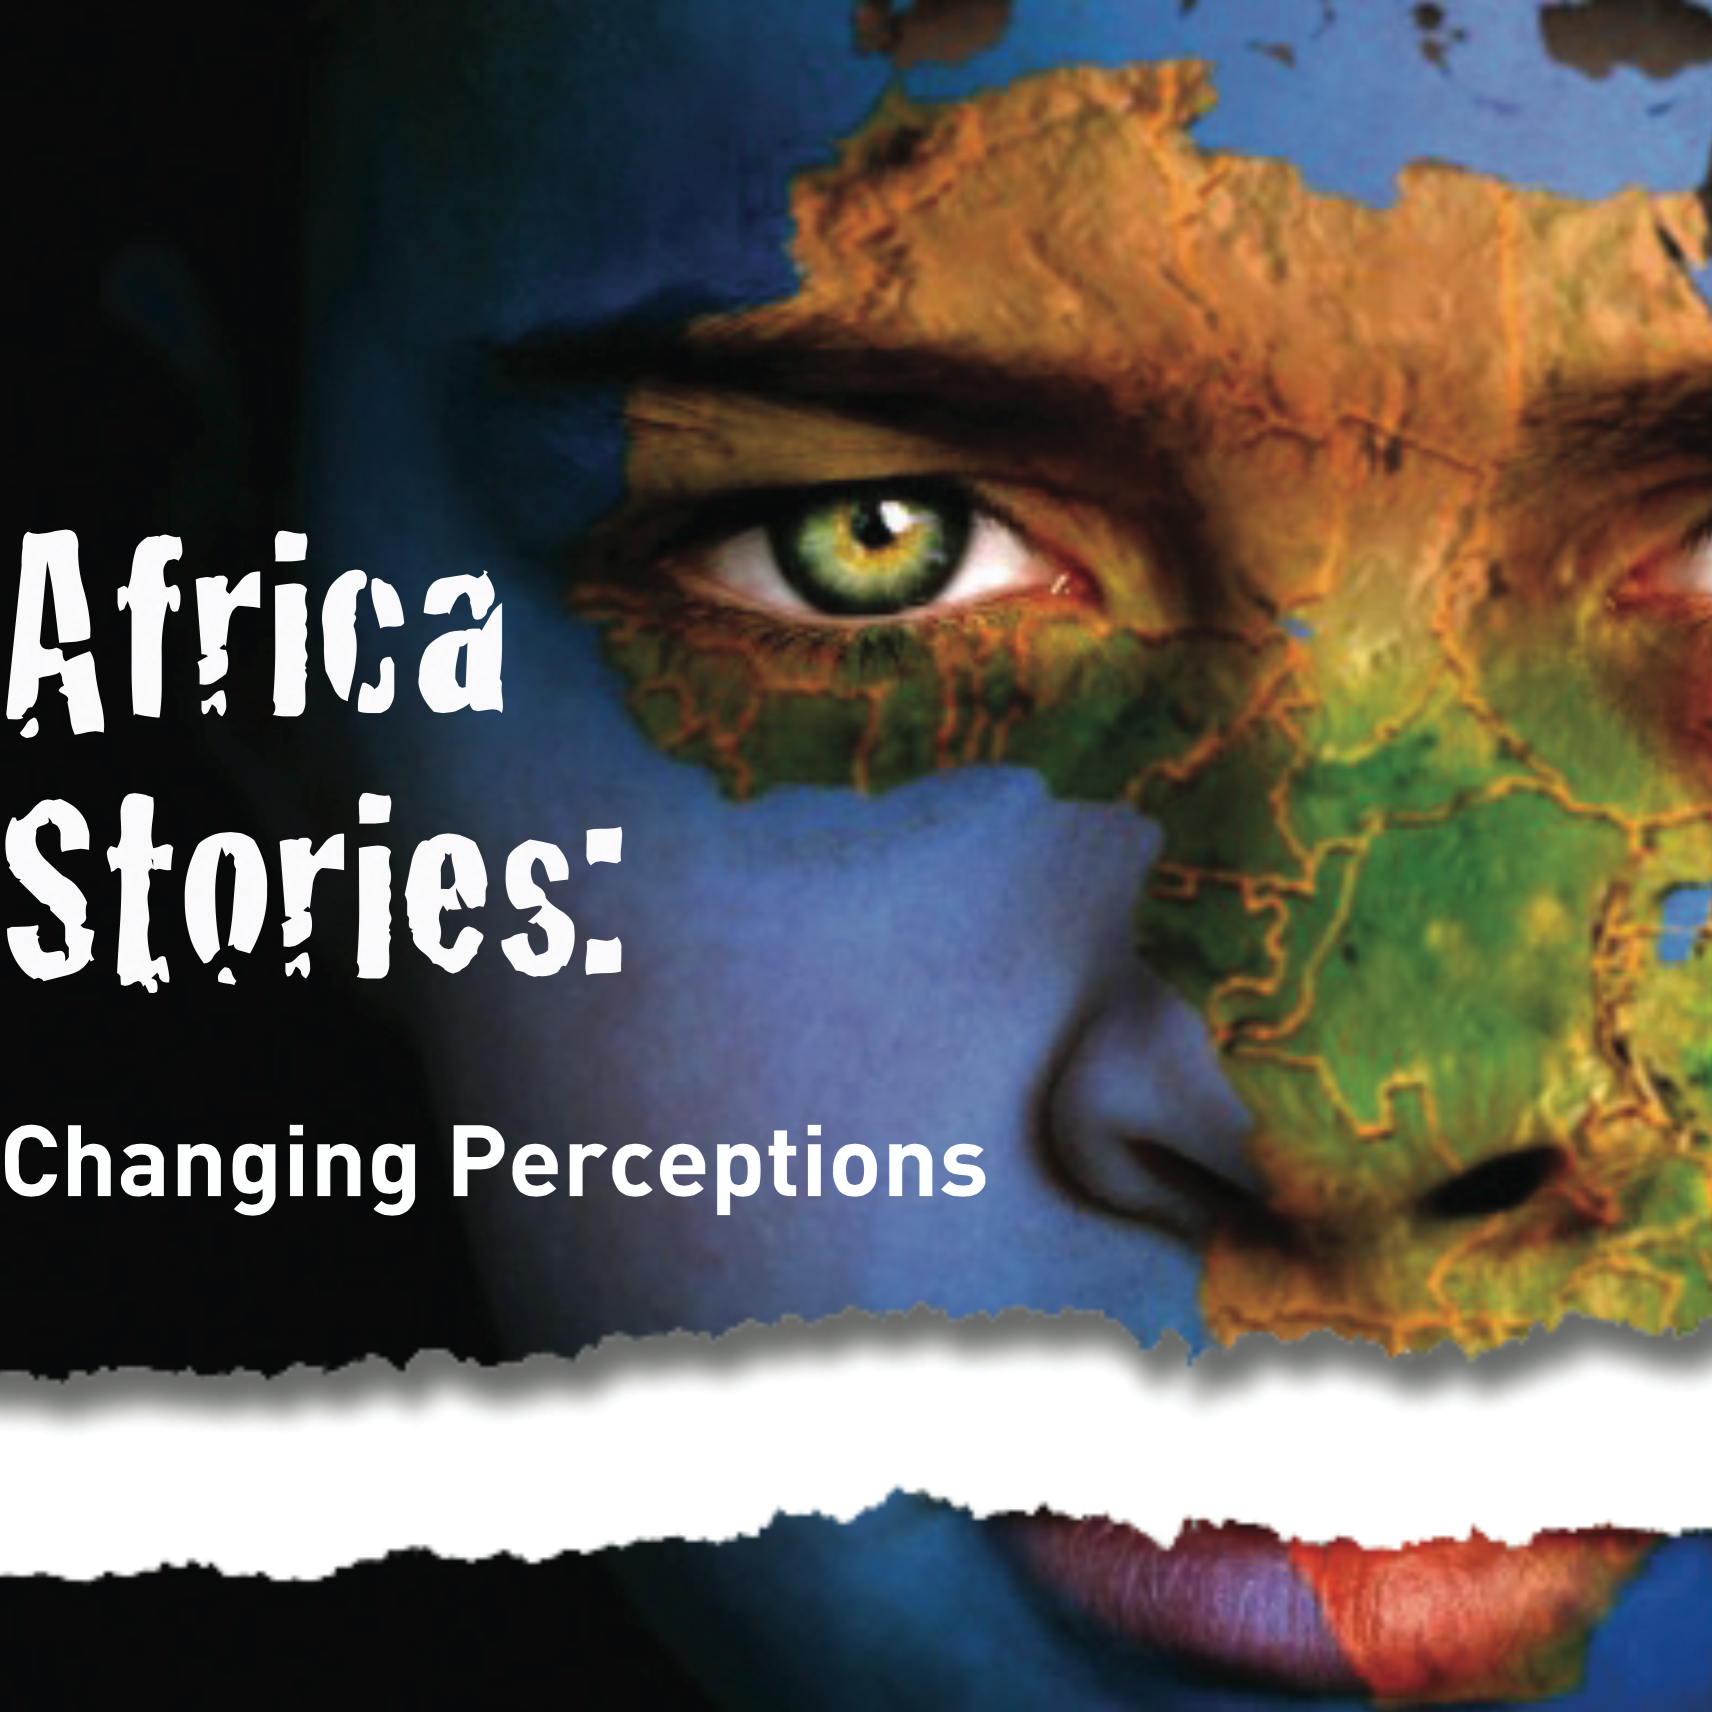 Africa Stories event poster